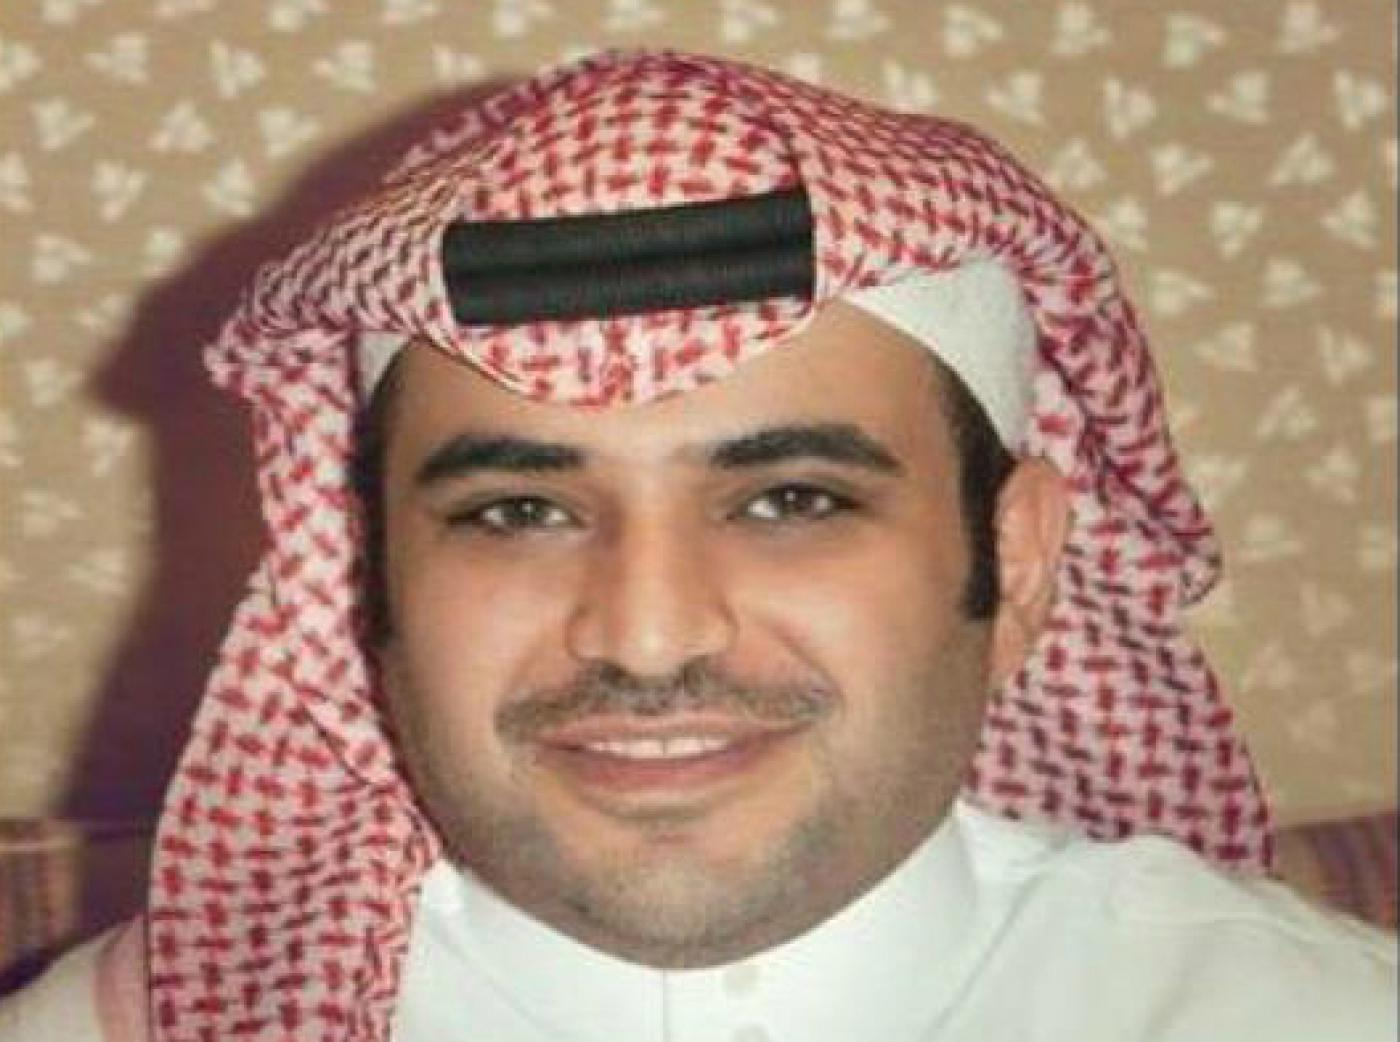 Saudi and Turkish sources told Reuters that Qahtani skyped into the Istanbul consulate during Khashoggi's murder (Supplied)